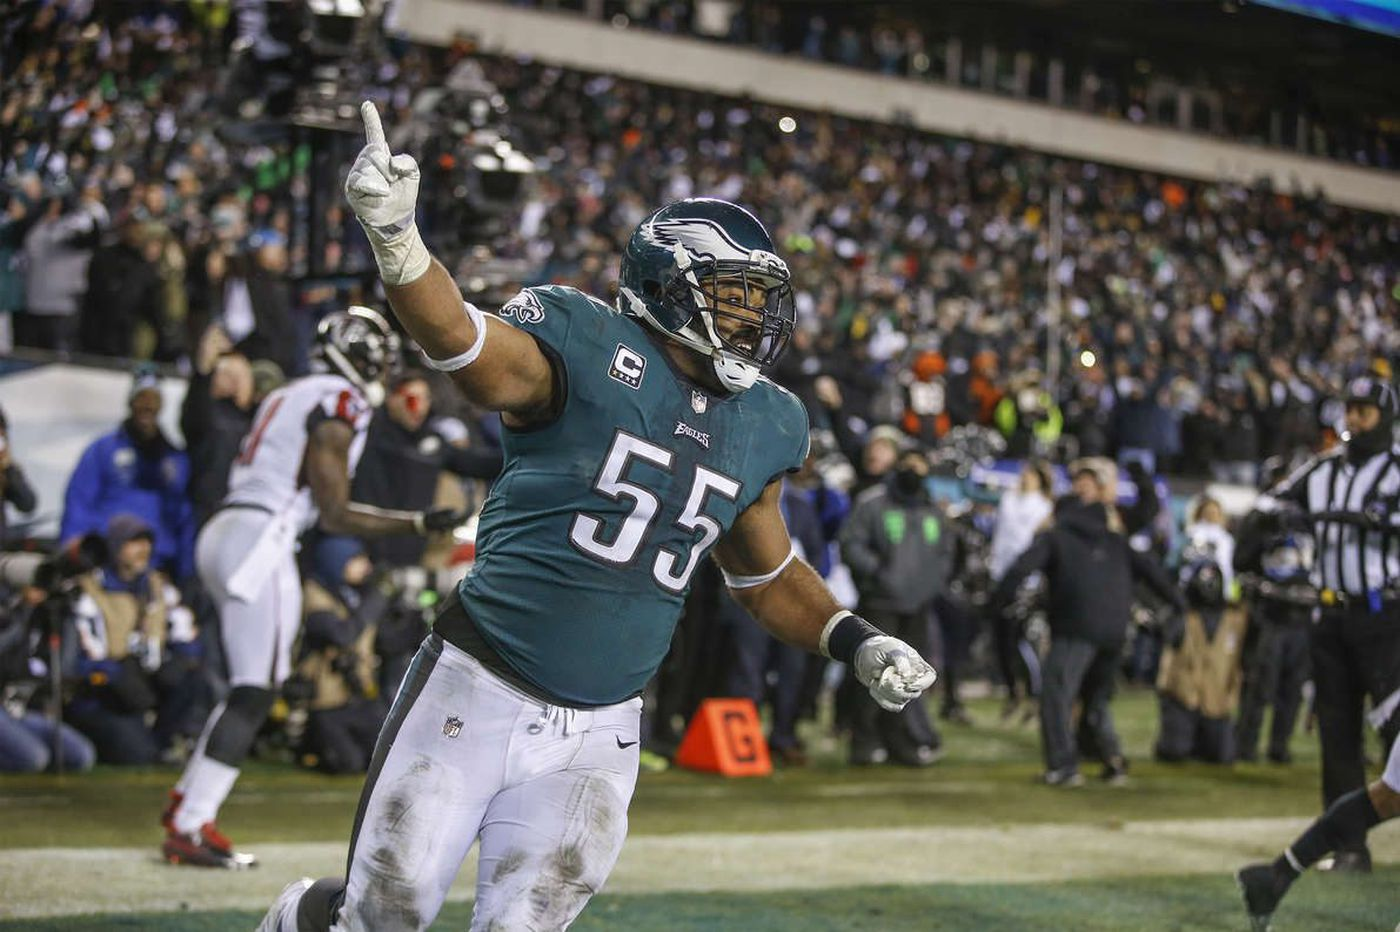 After a long absence, the NFL playoff spotlight returns, and Eagles' Brandon Graham savors it